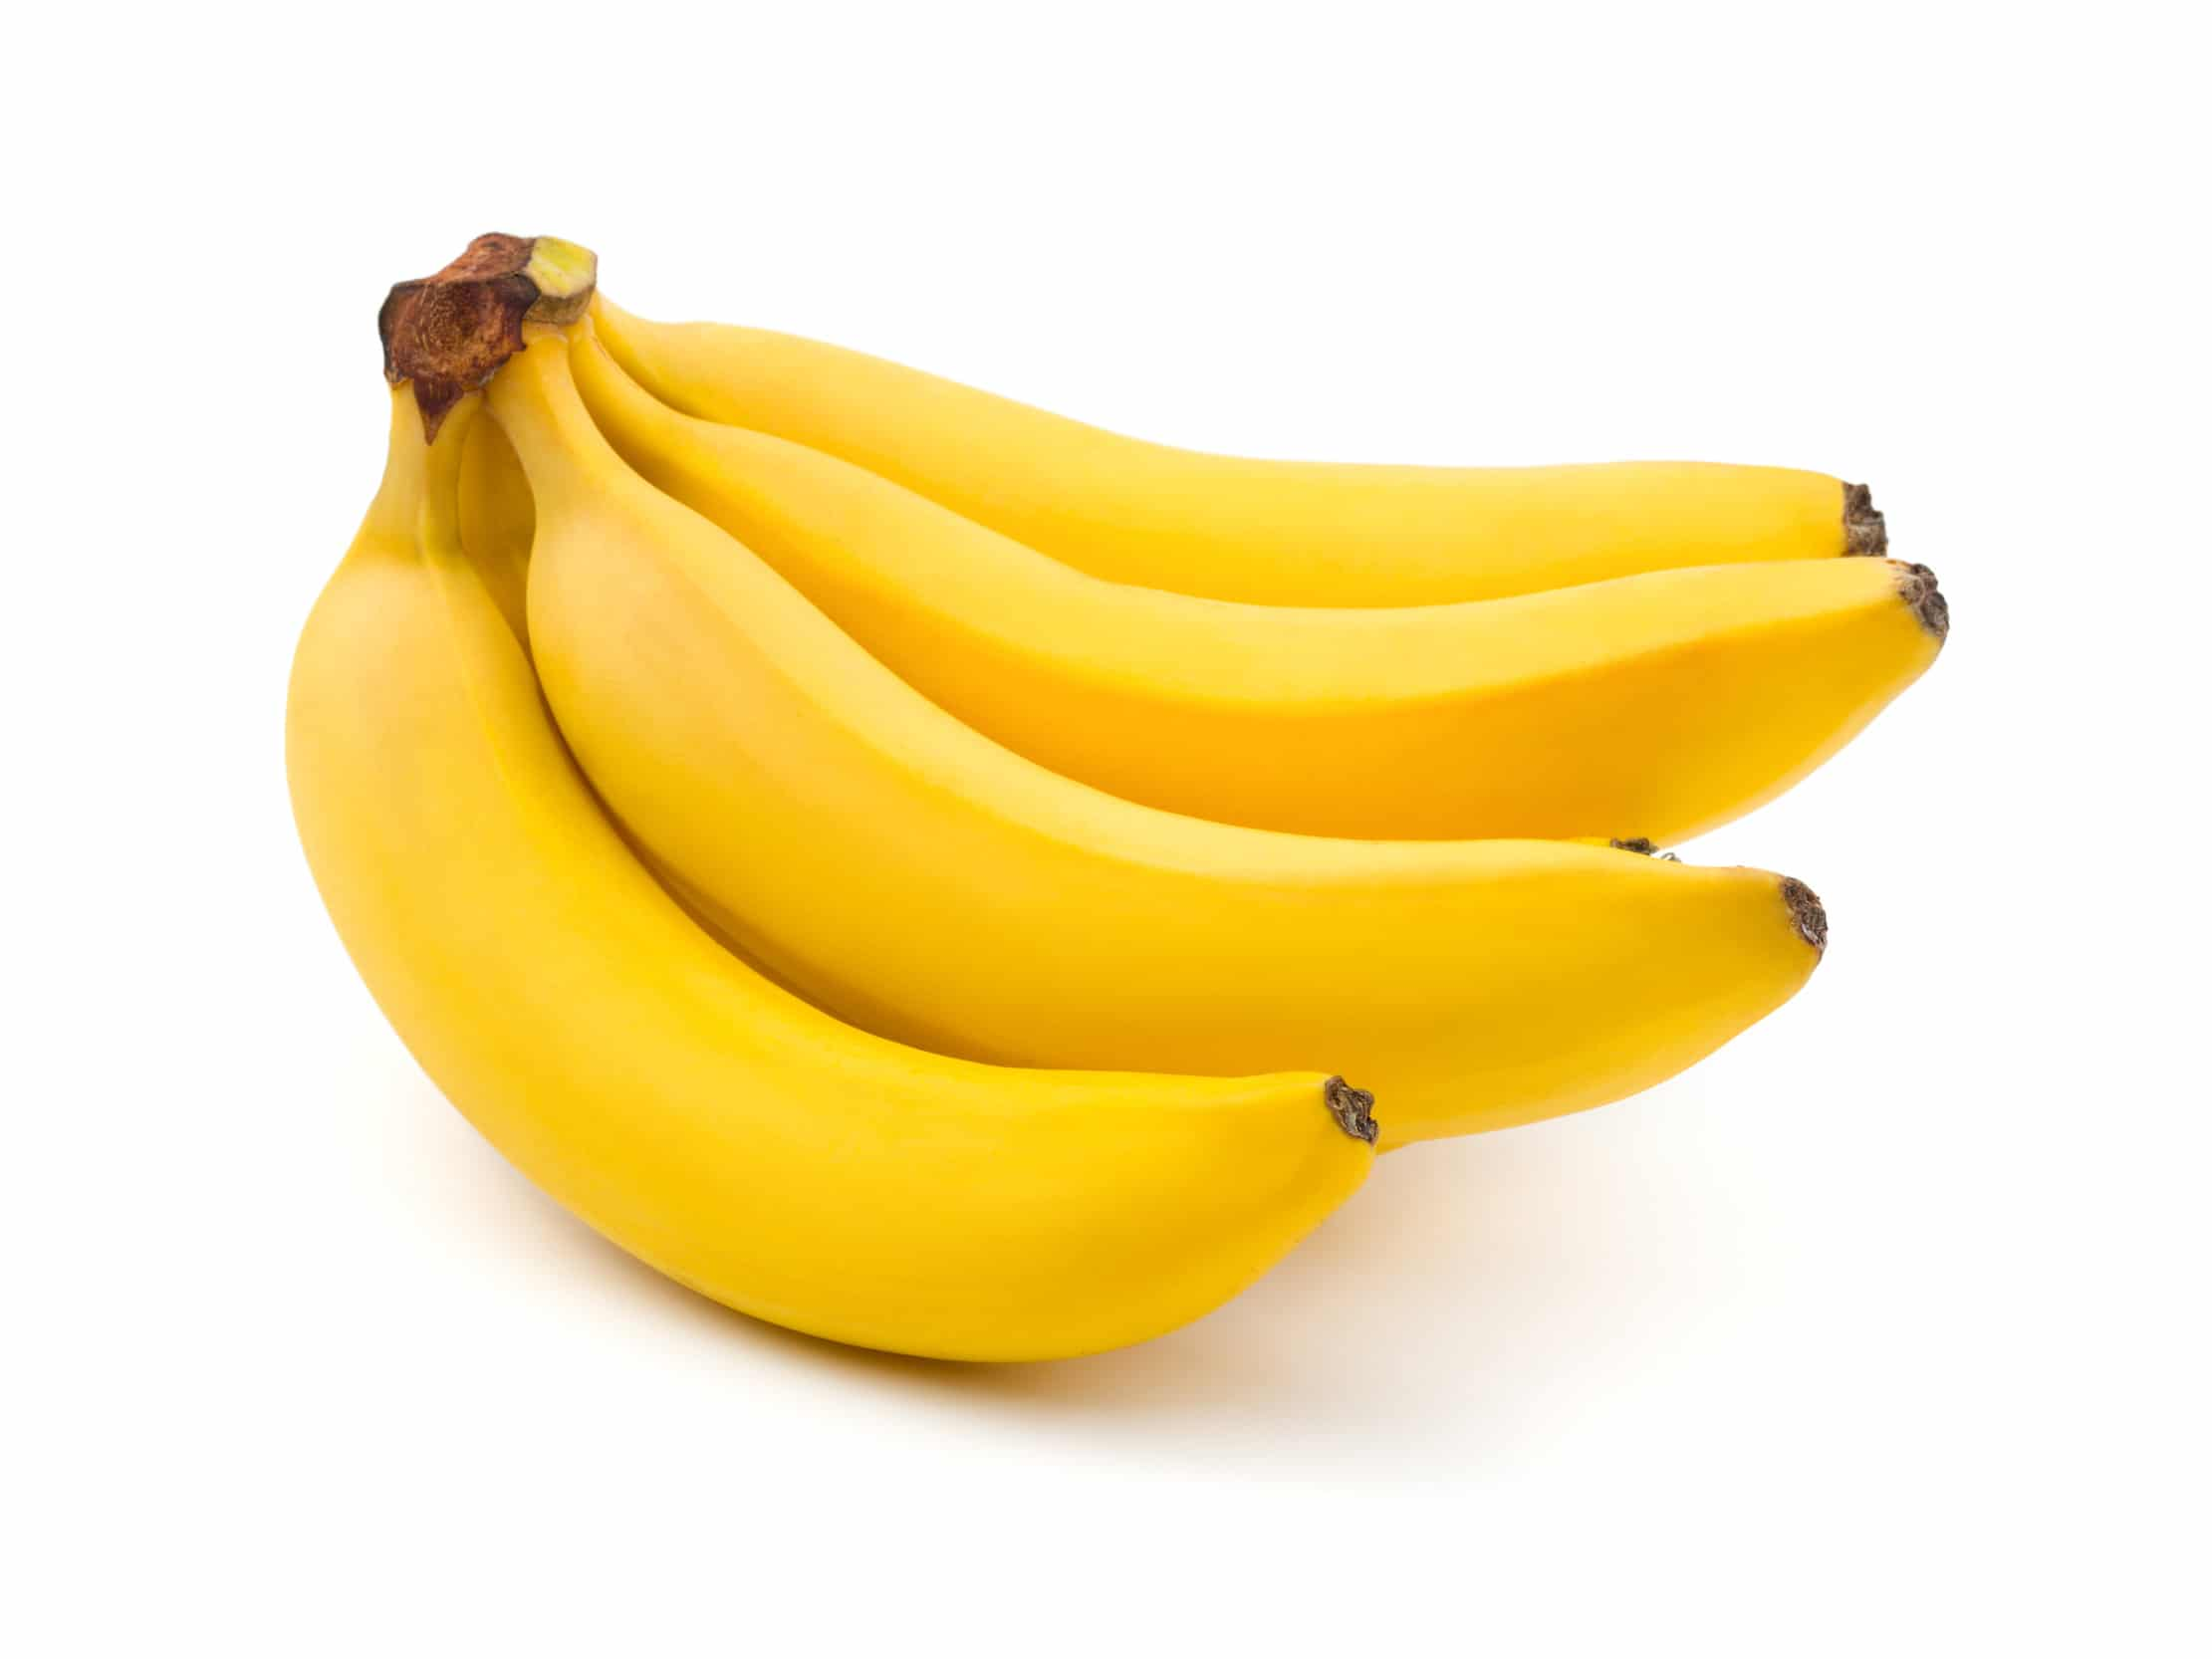 15 Uses for Bananas